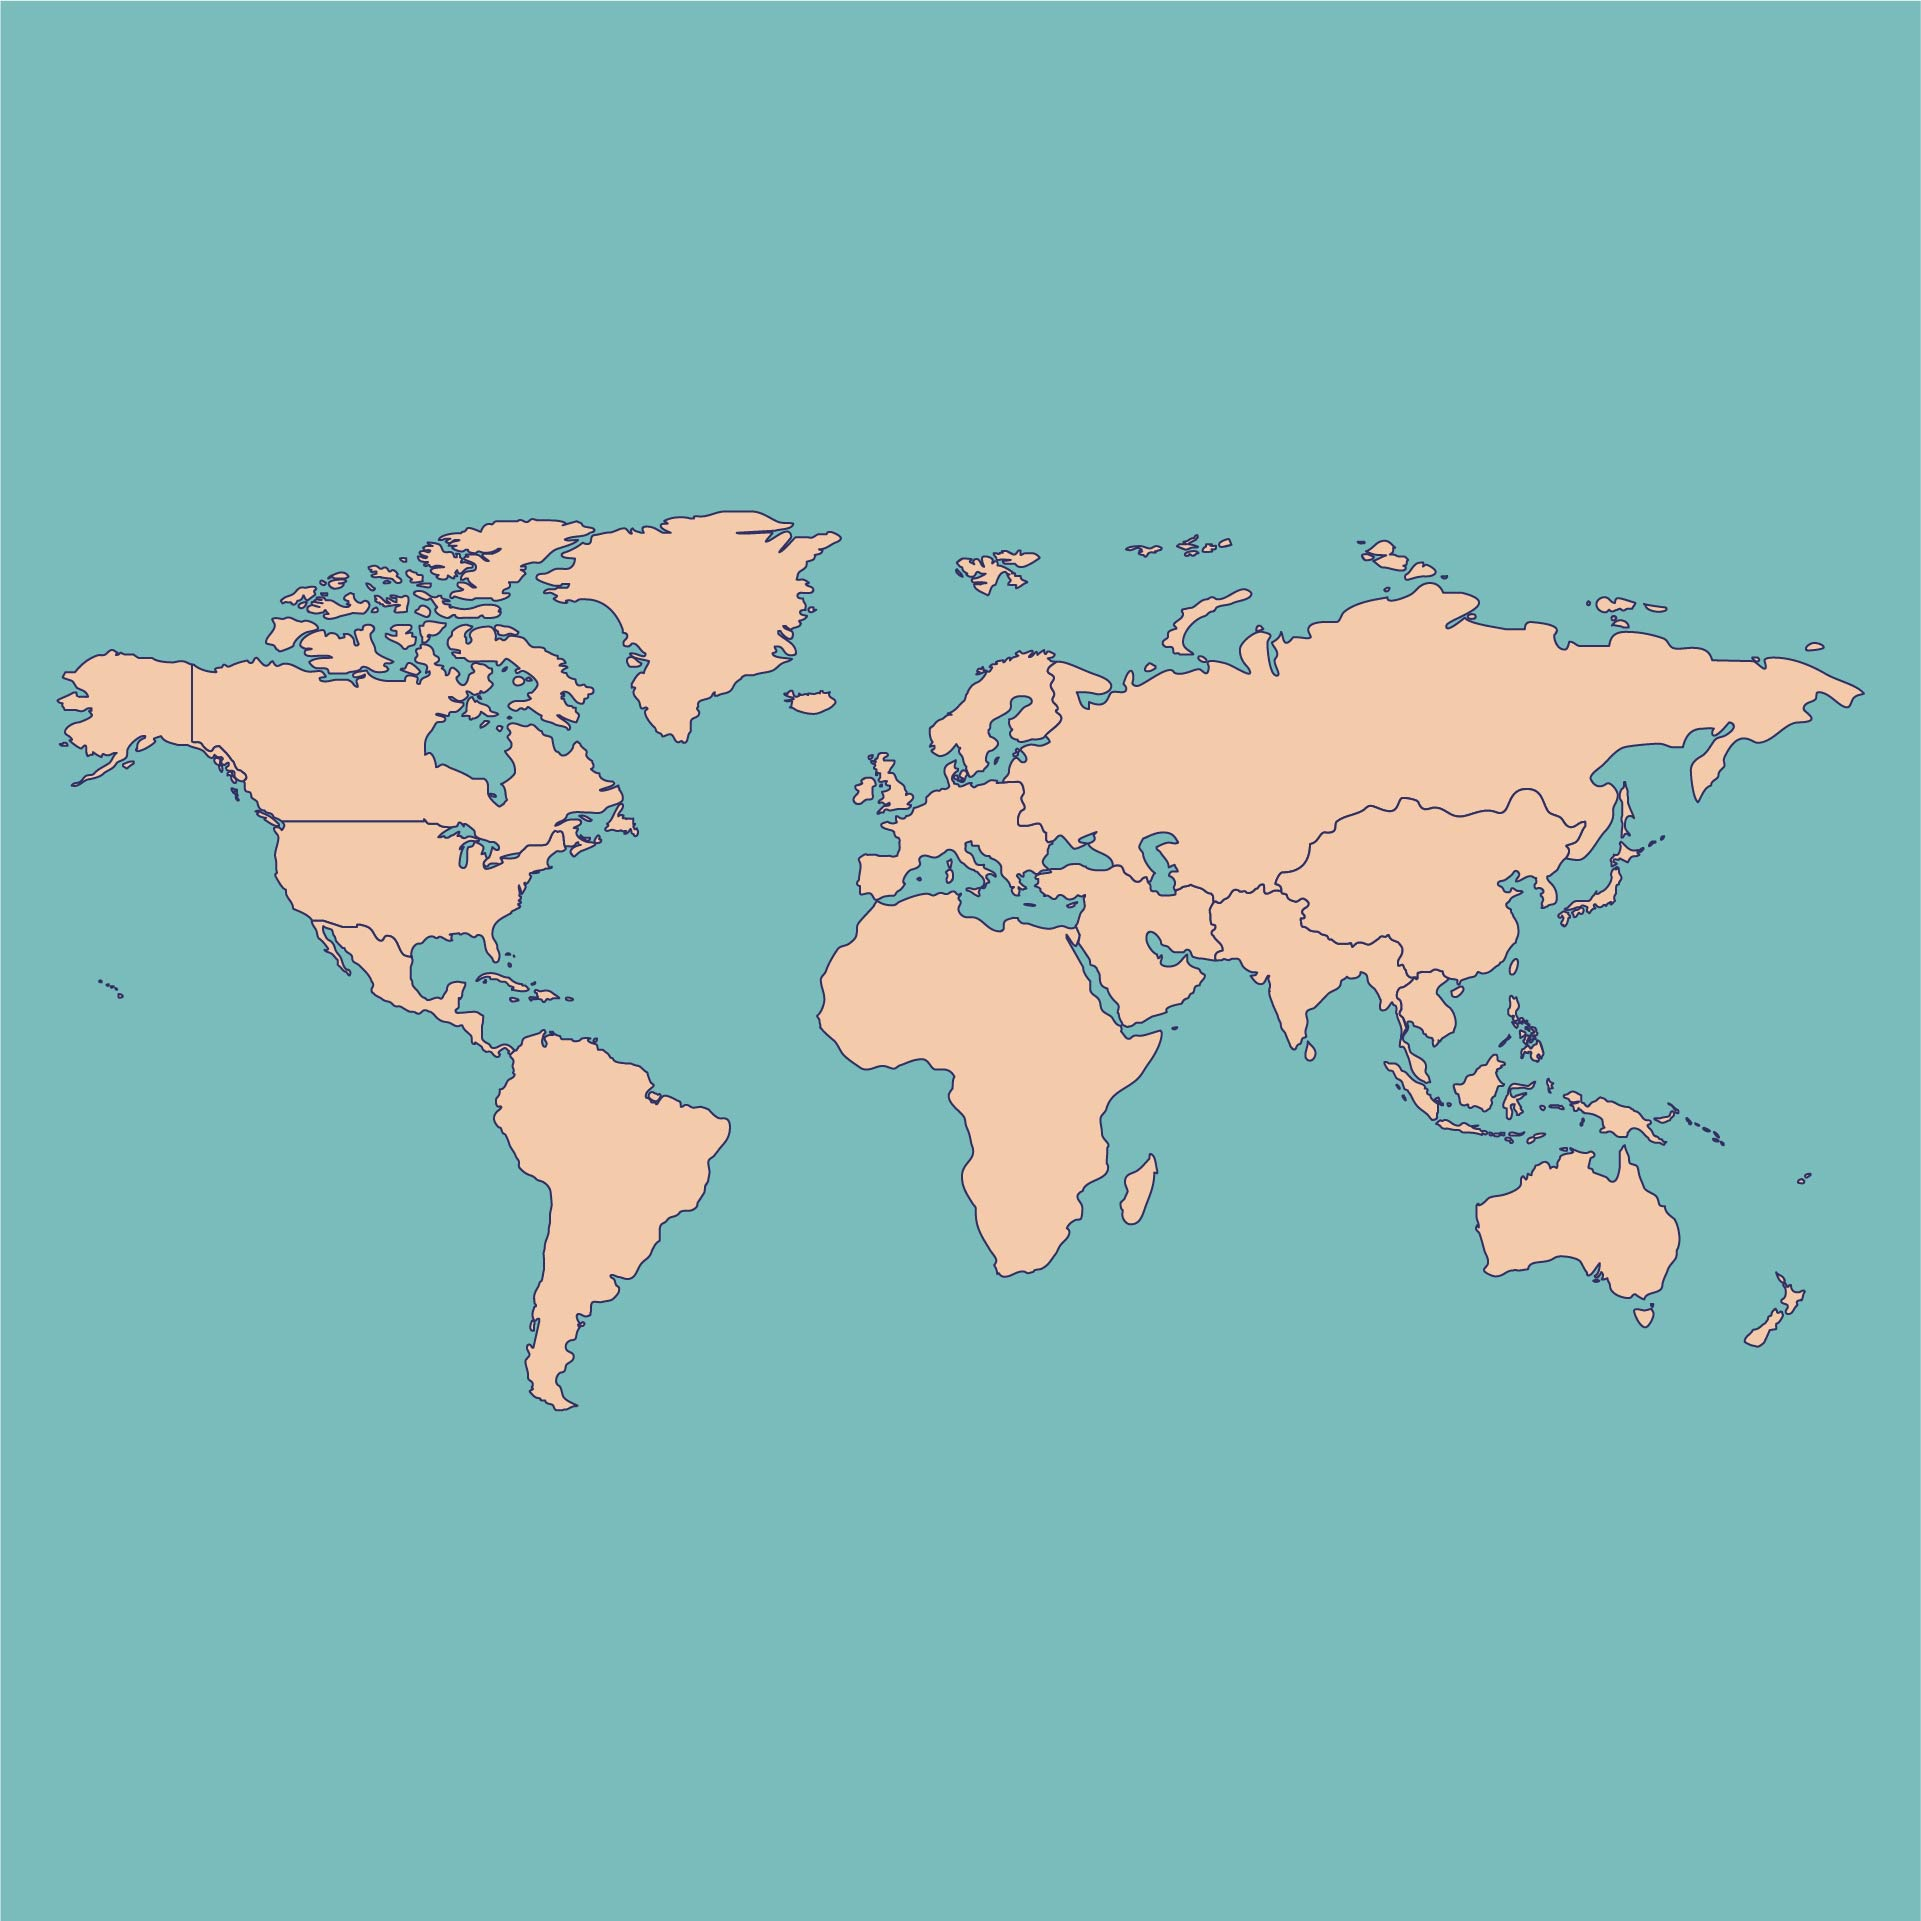 6 Best Images of Printable World Map Not Labeled ...